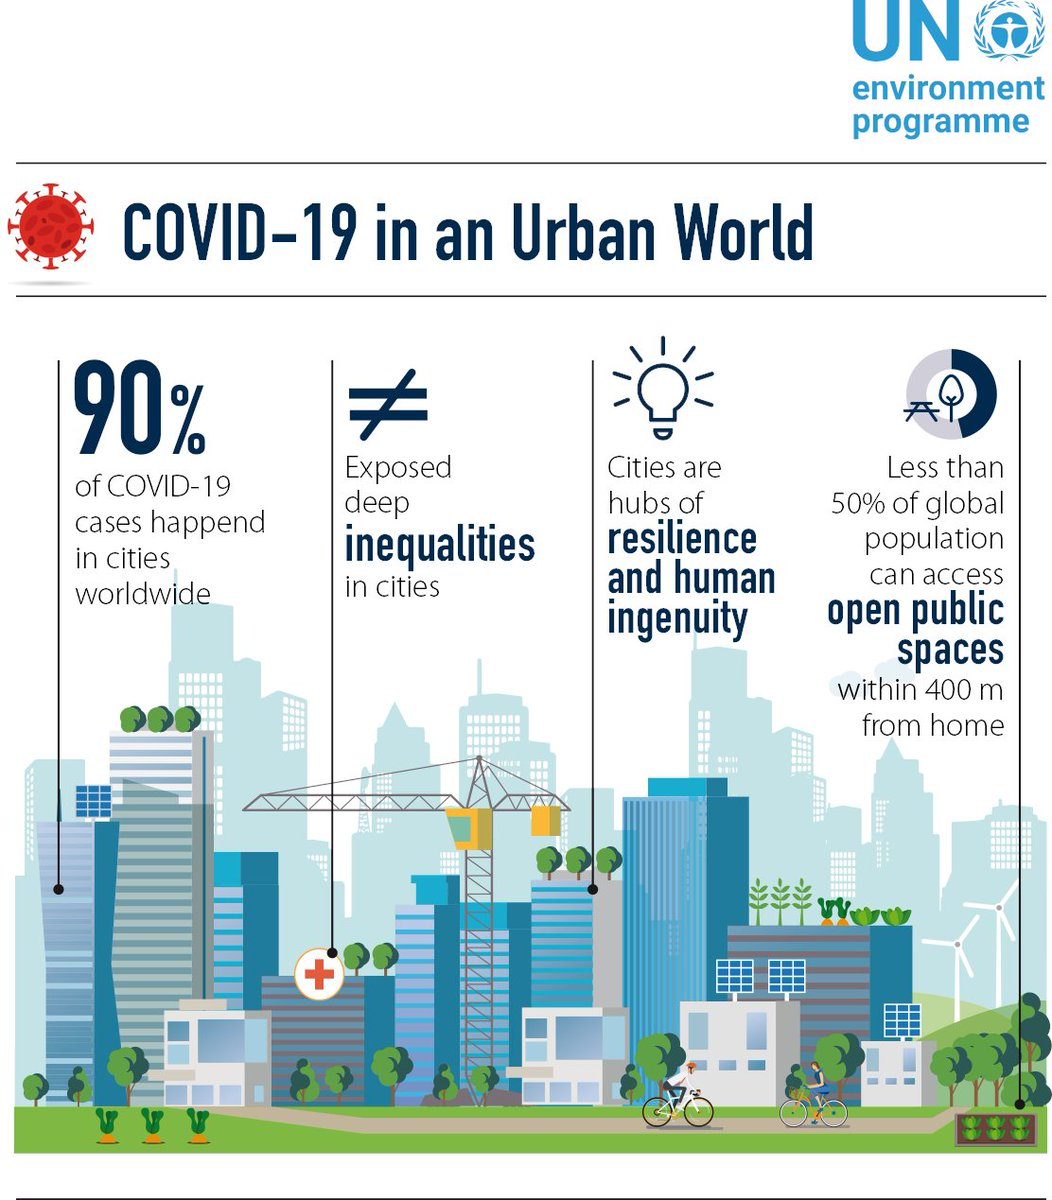 #COVID19 recovery = an opportunity to future-proof economies & for cities🏙️ to 🟢Clear their air 🟢Green their open spaces, 🟢Embrace solutions that help decarbonize & drive down resource use and related impacts on ecosystems ✅While creating new jobs. bit.ly/2PArhcG